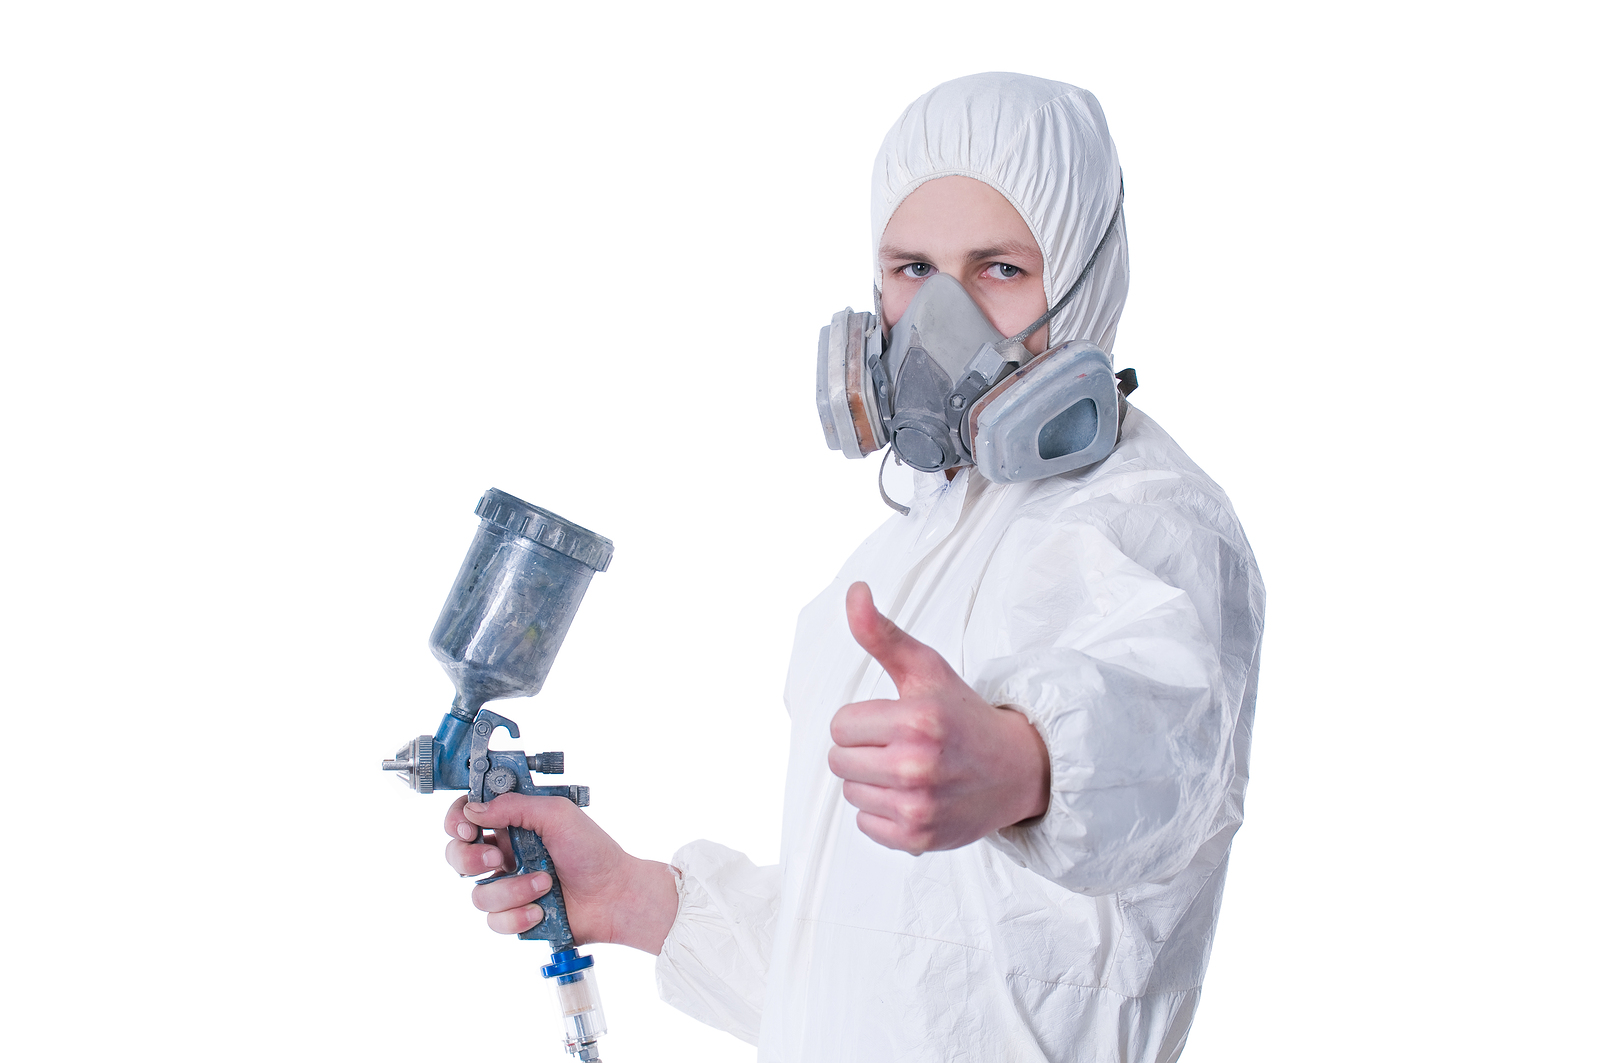 Spray painting in cold weather problems you may face for Spray paint safety